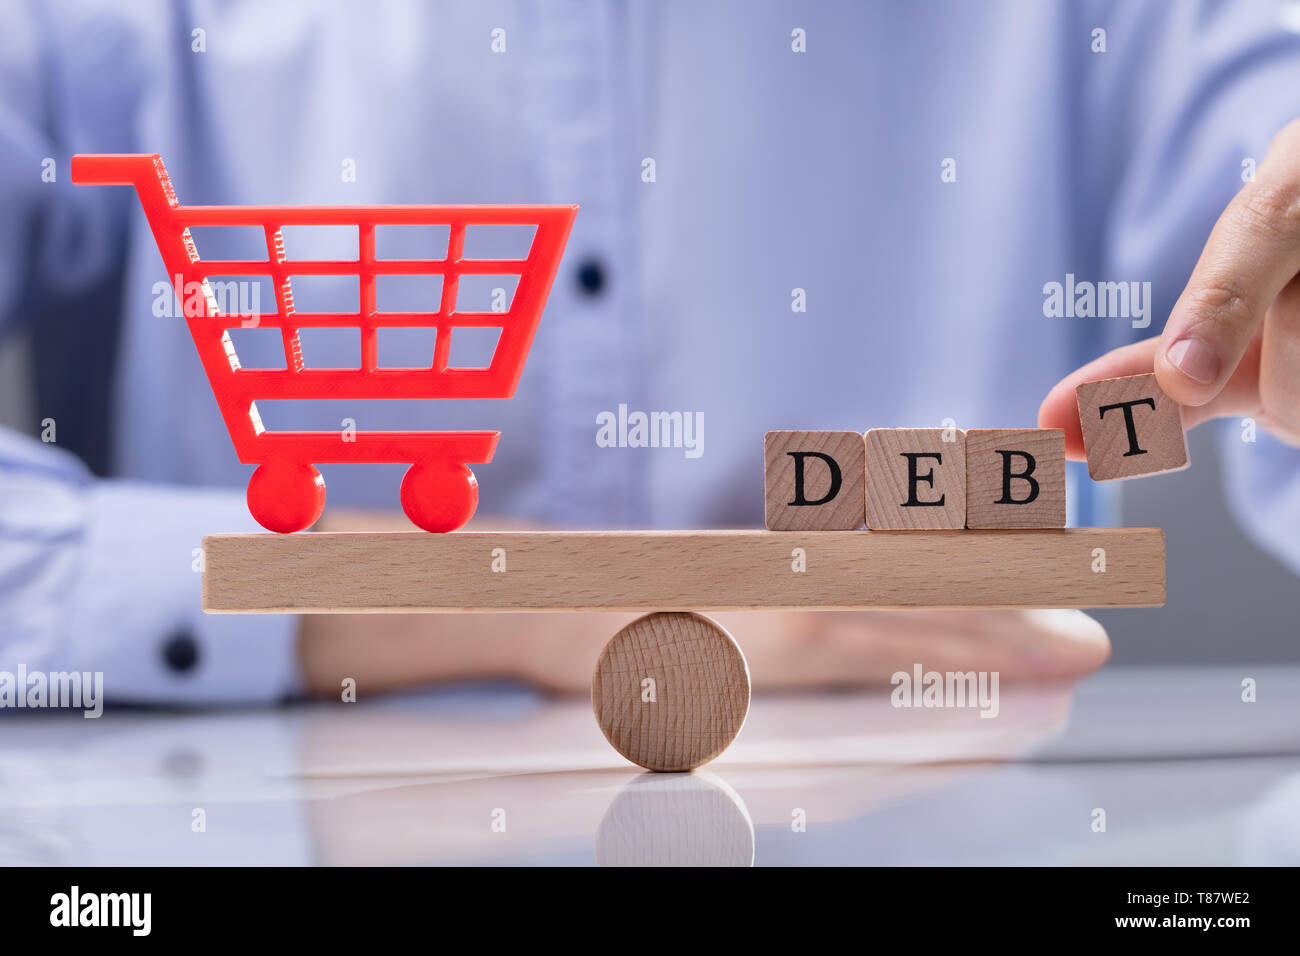 Person's Hand Putting Word Debt On Seesaw To Balancing Red Shopping Cart Icon - Stock Image